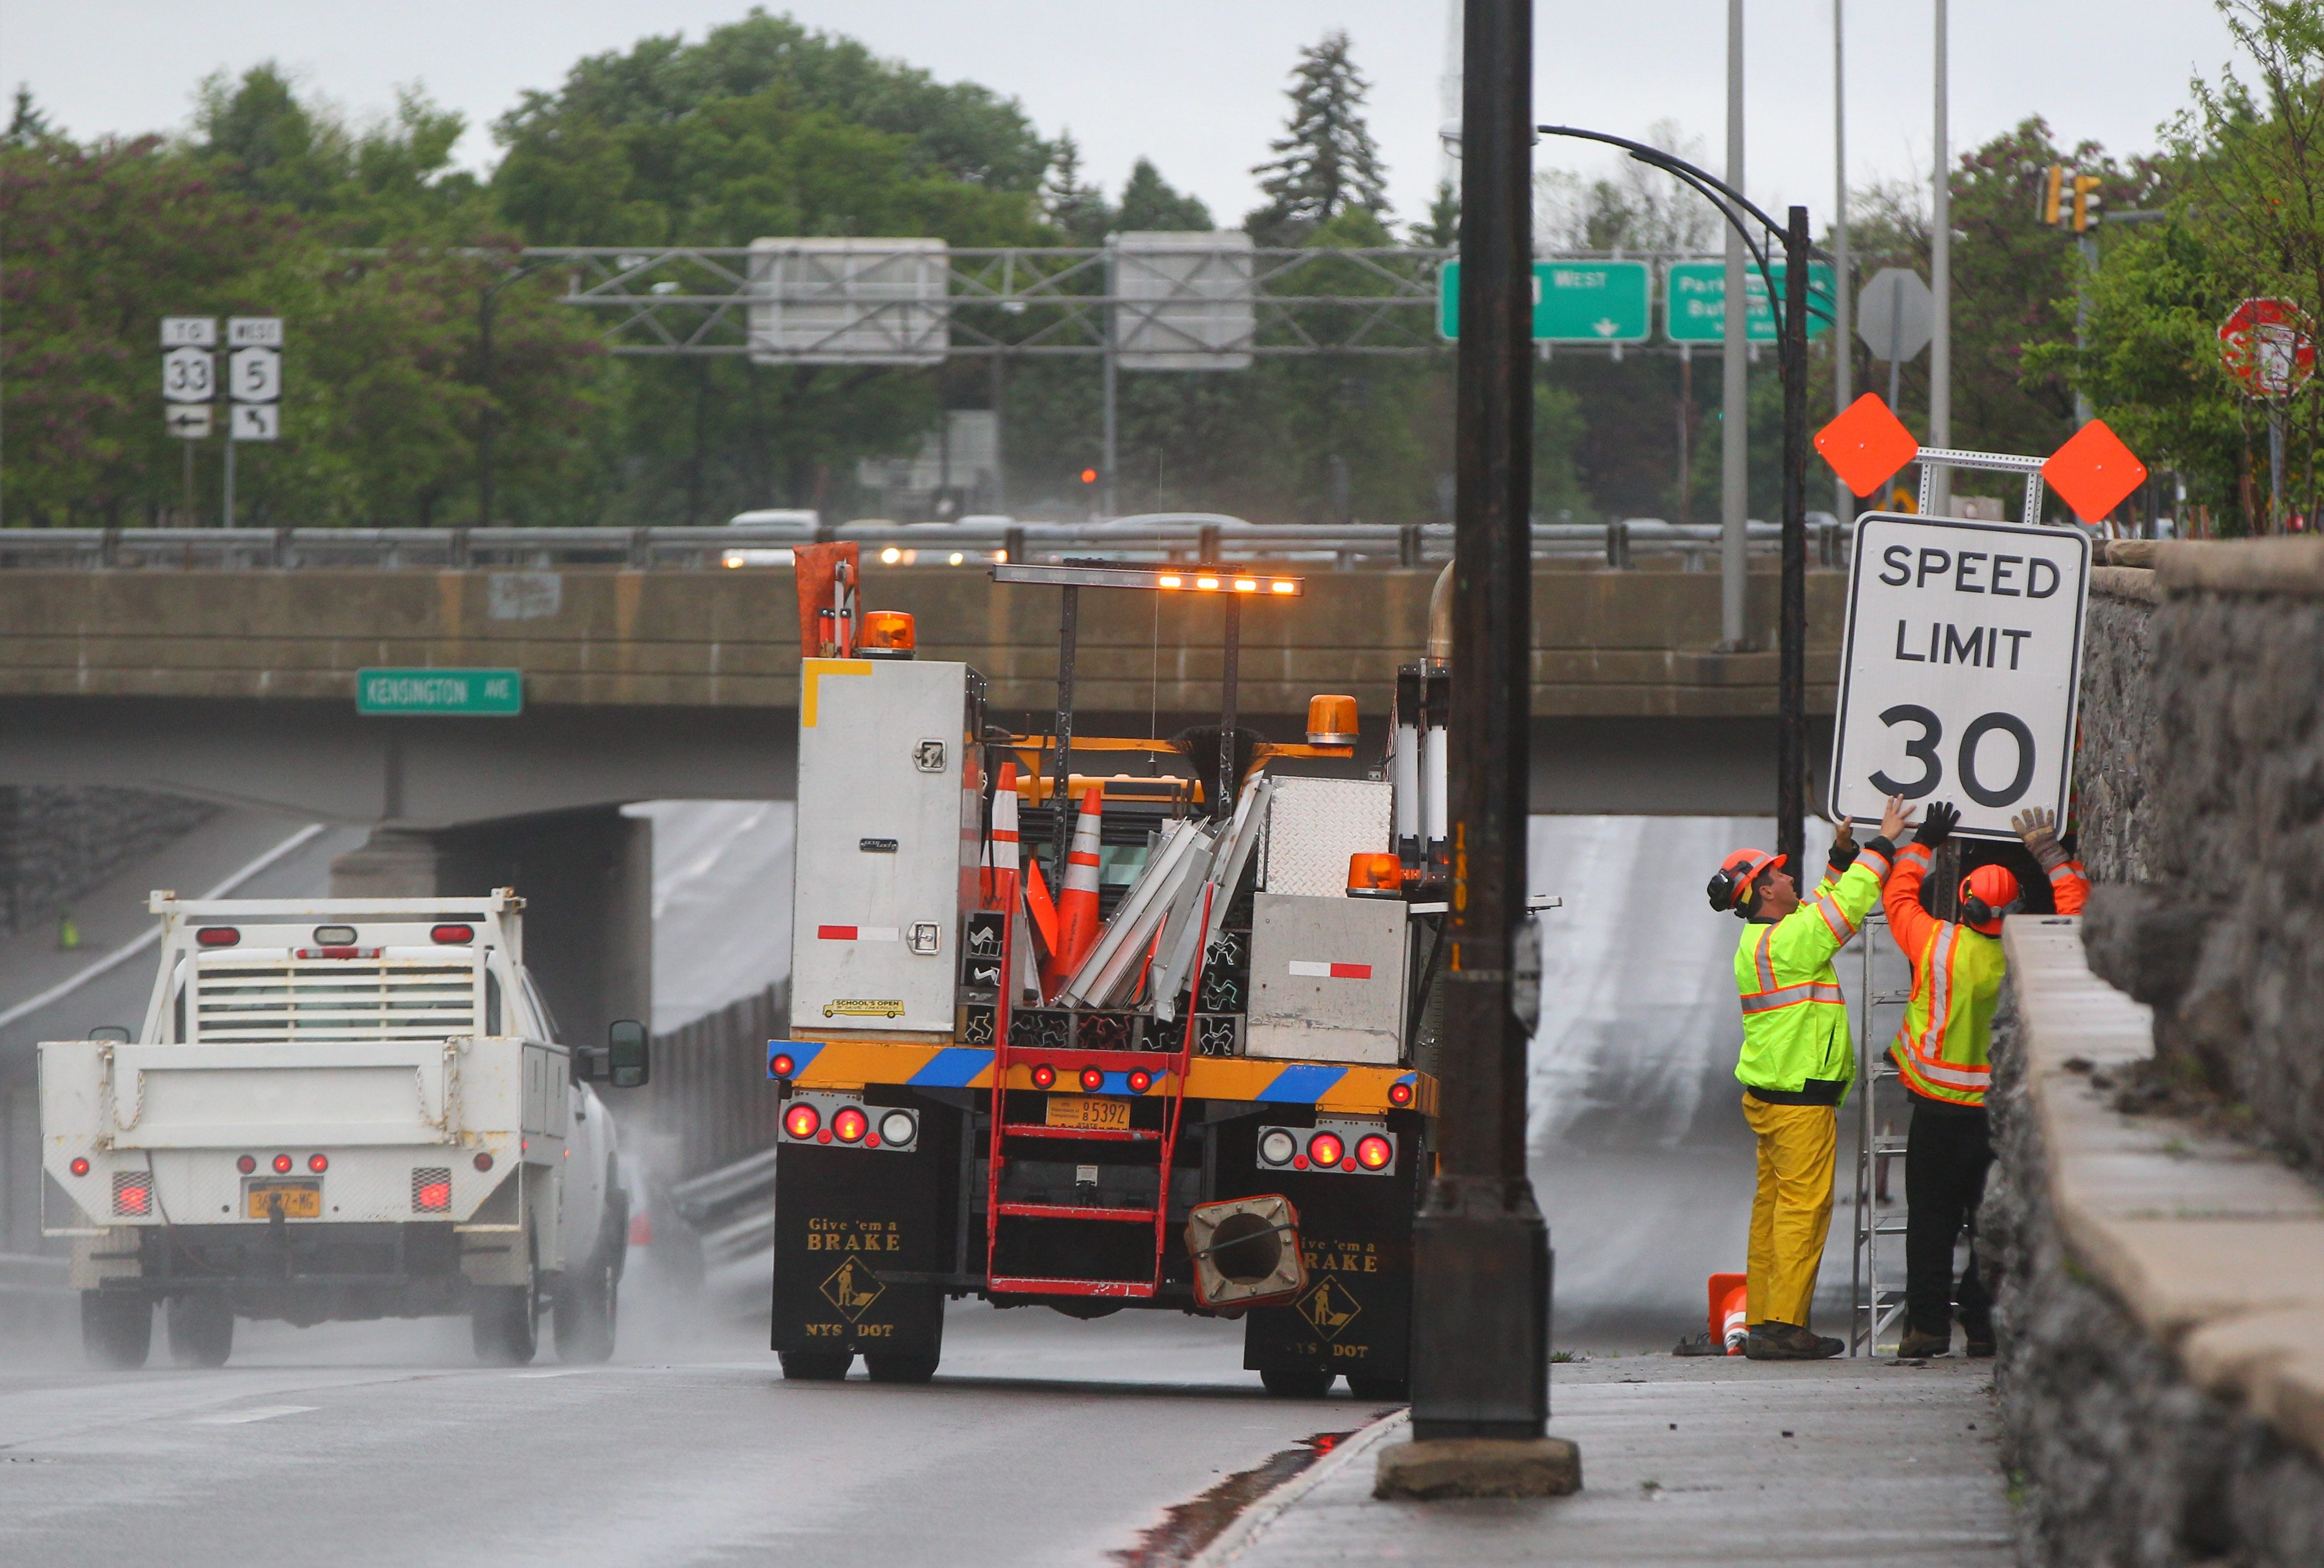 DOT crews replace the speed limit sign on the Scajaquada near Main Street in Buffalo Sunday, May 31, 2015, the day after a boy was struck and killed on the Ring Road in Delaware Park.    (Mark Mulville/Buffalo News)